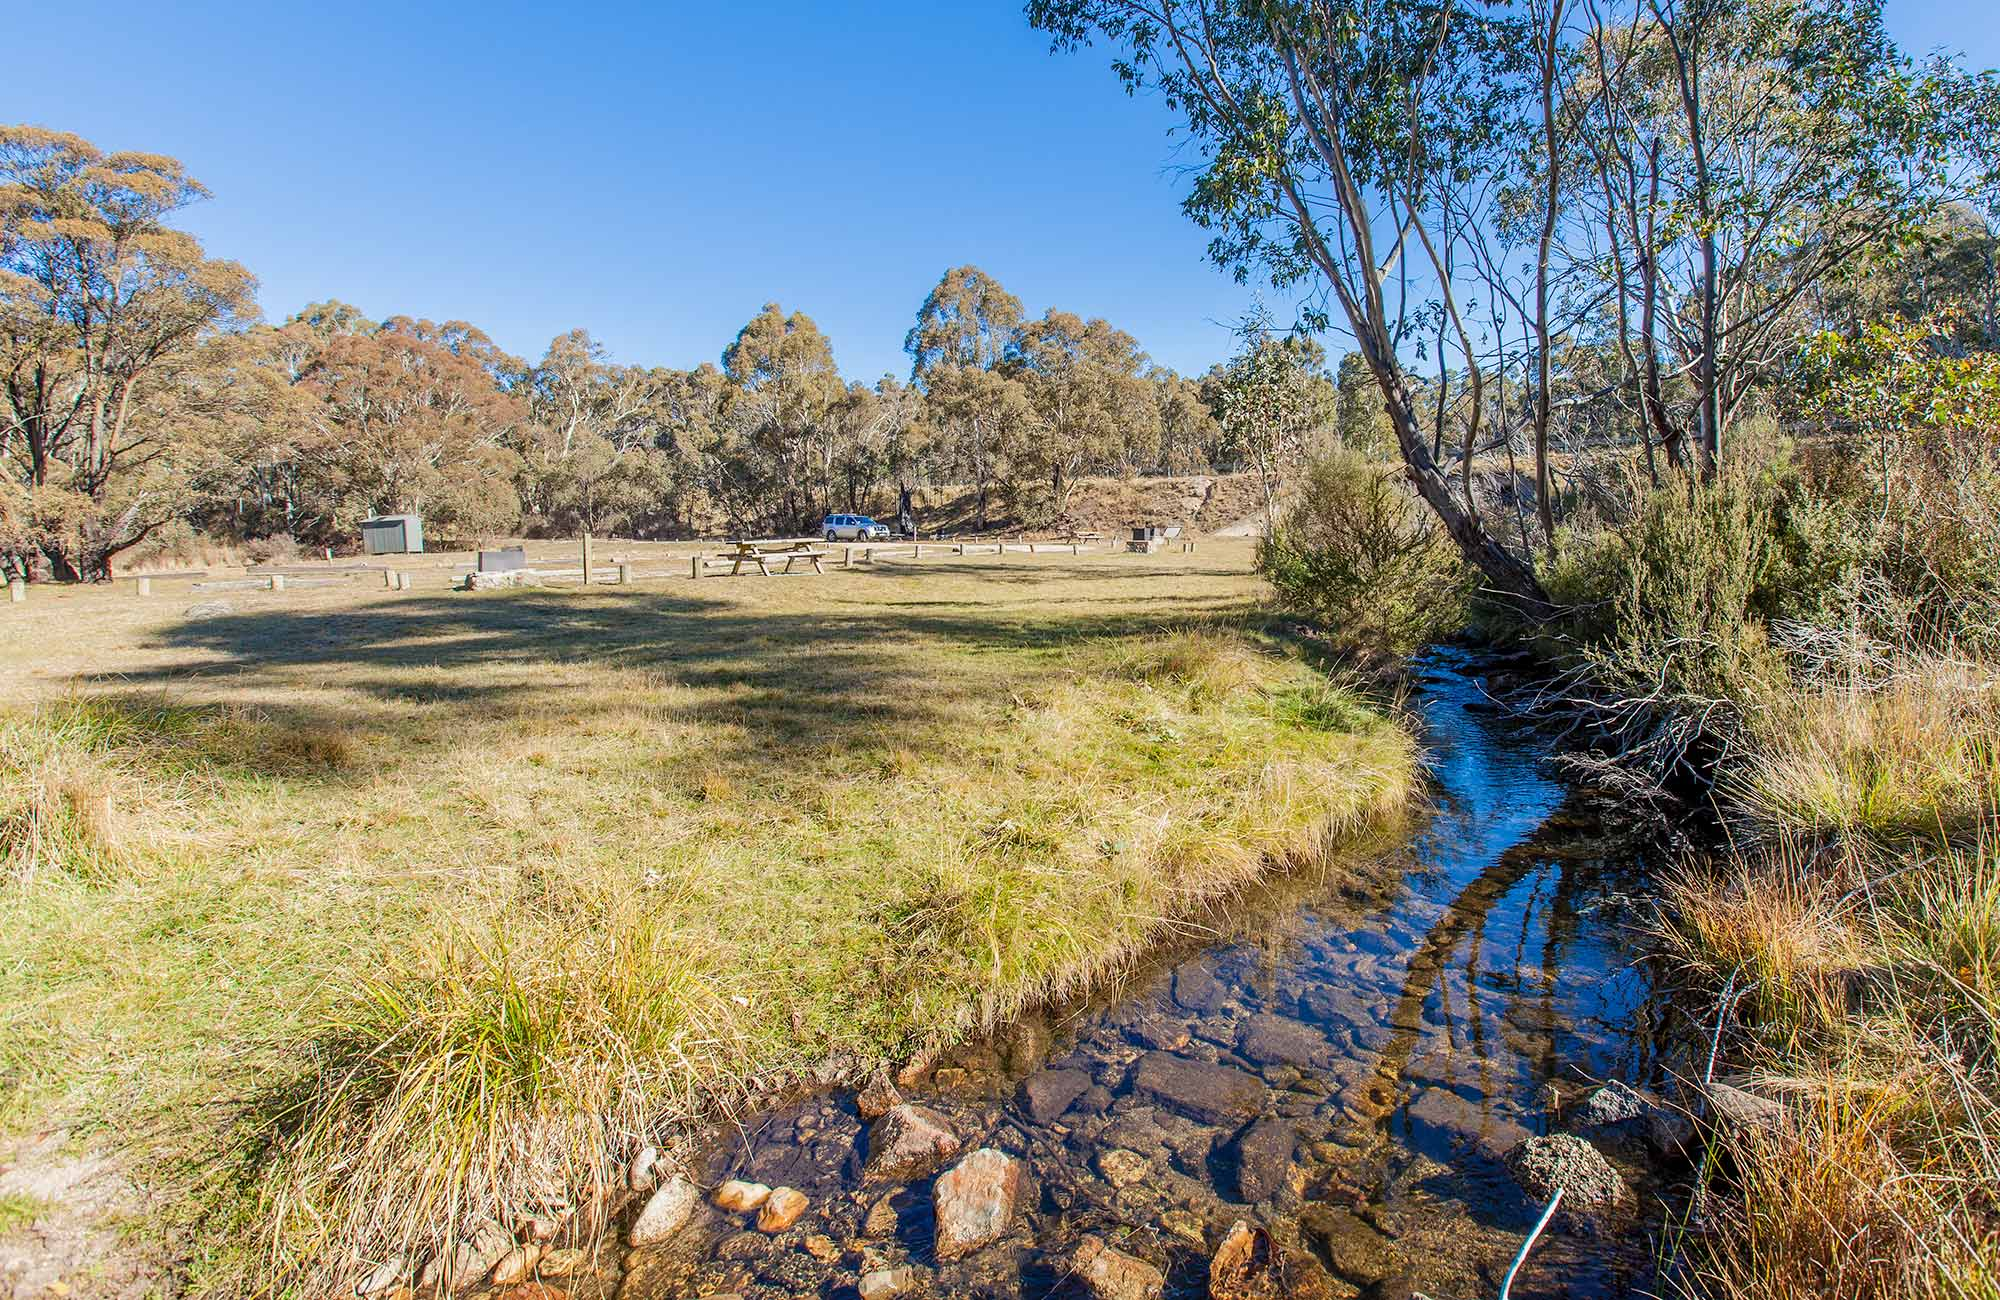 Sawpit Creek runs past Sawpit Creek picnic area, Kosciuszko National Park. Photo: Murray Vanderveer